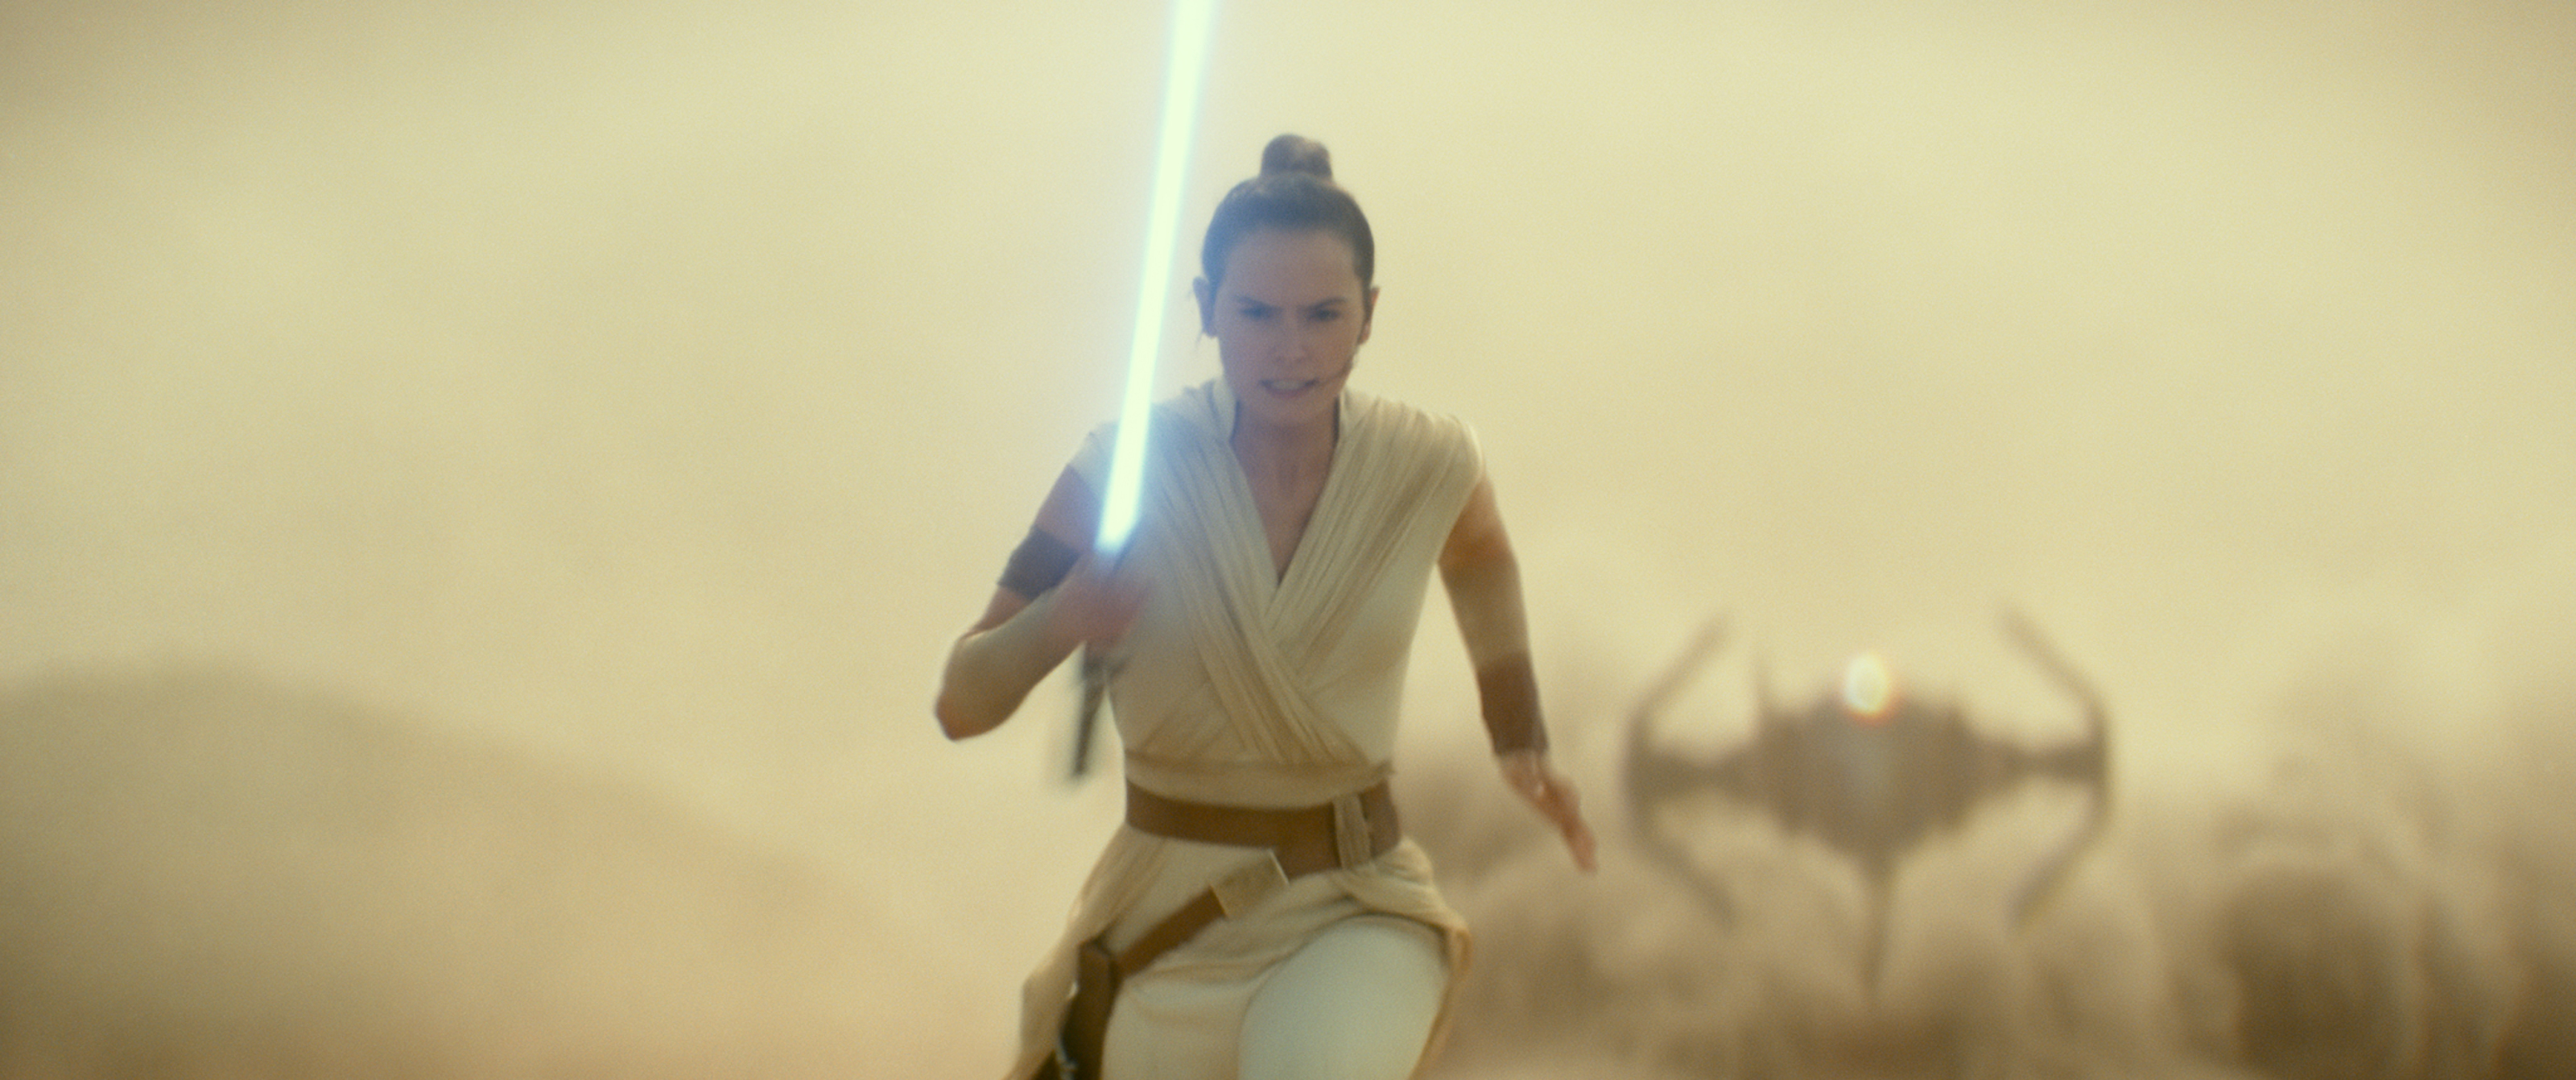 J.J. Abrams explains why he retconned Rey's parents in Rise of Skywalker